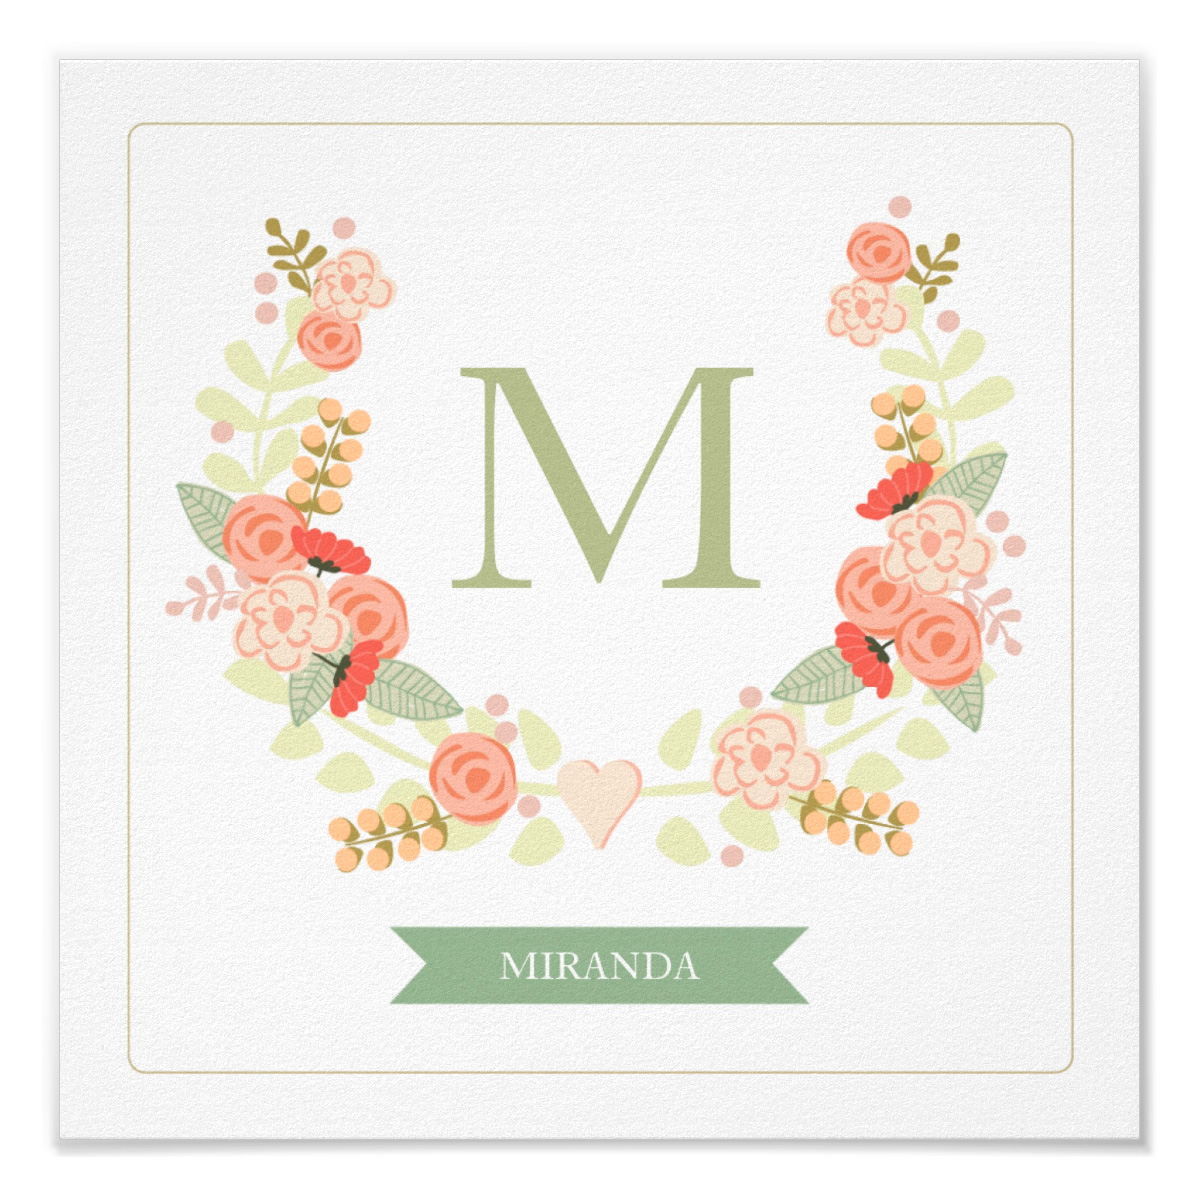 design by lachelle via | charming ink